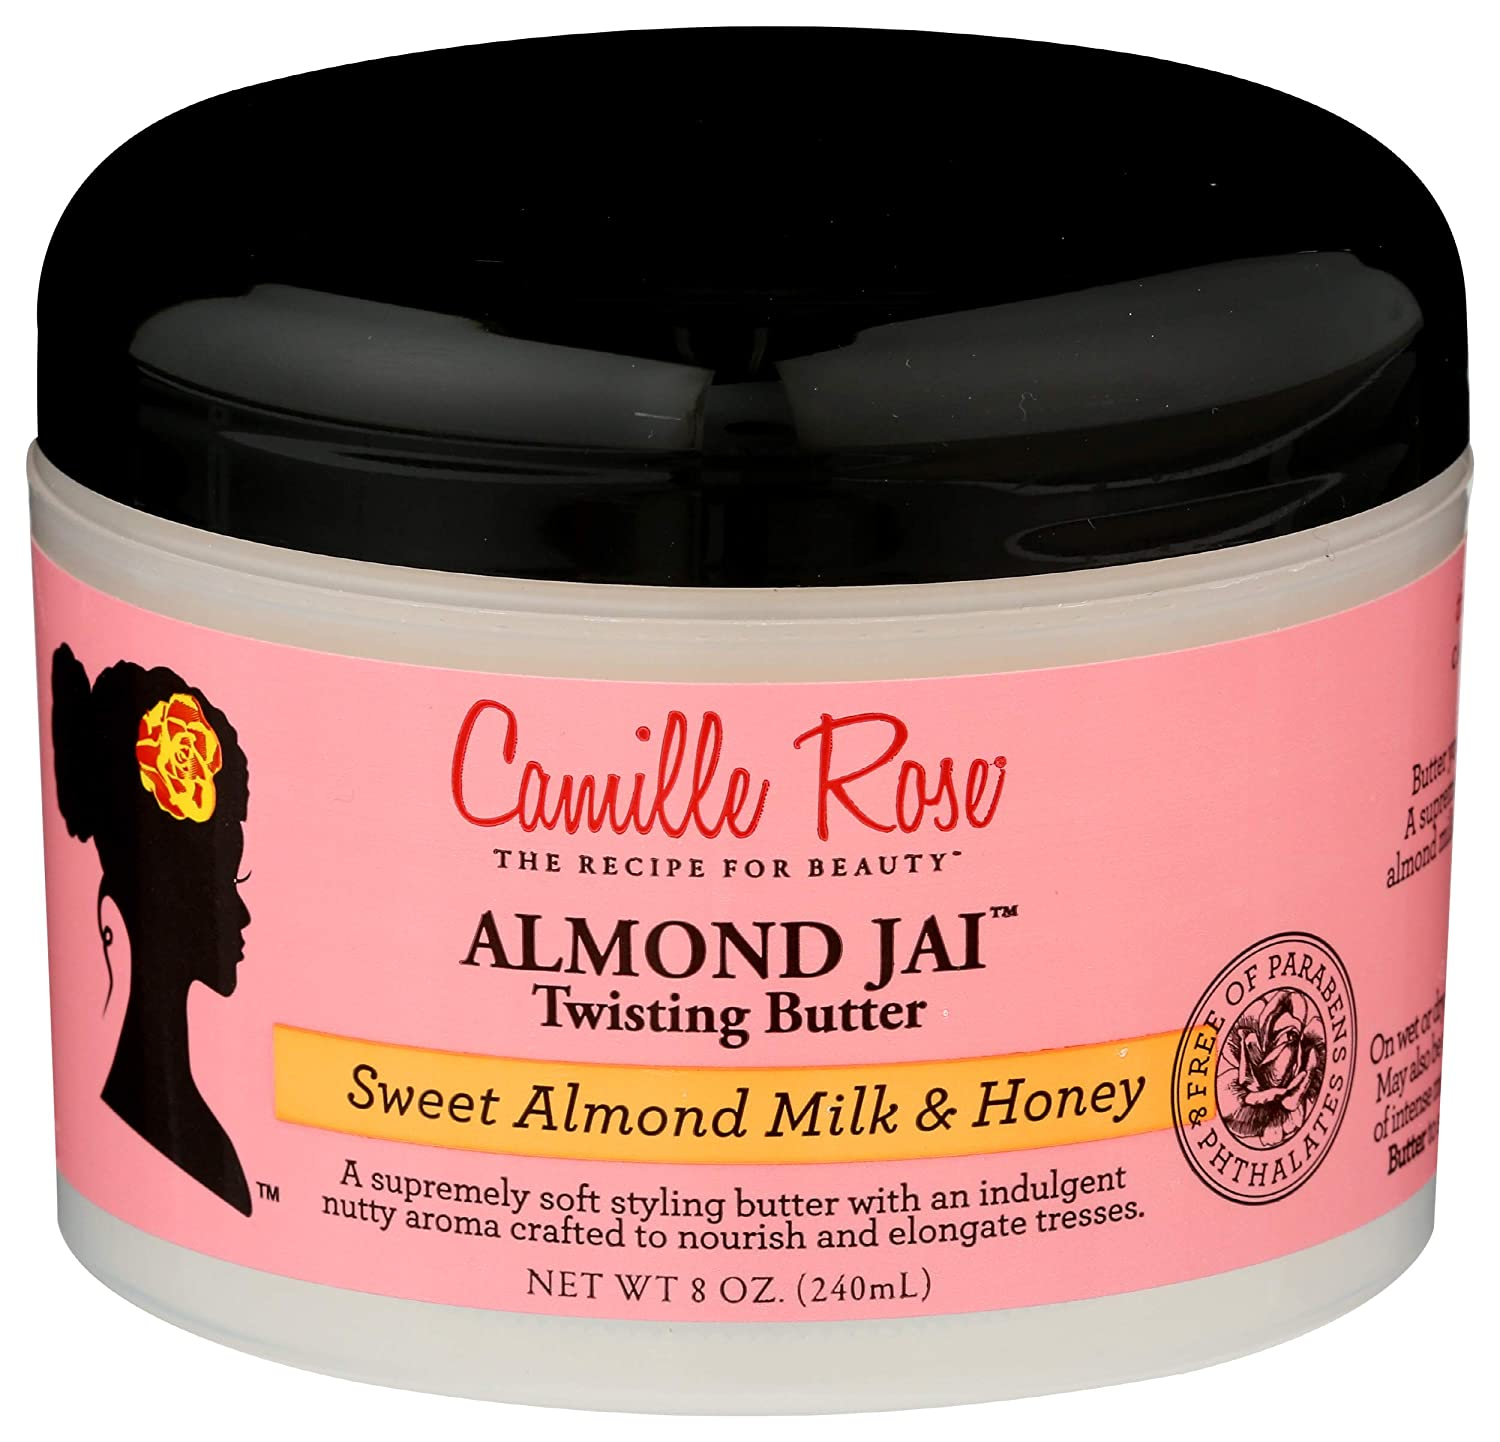 Camille Rose Almond Jai Twisting Butter, 8 fl oz : Standard Hair Conditioners : Beauty